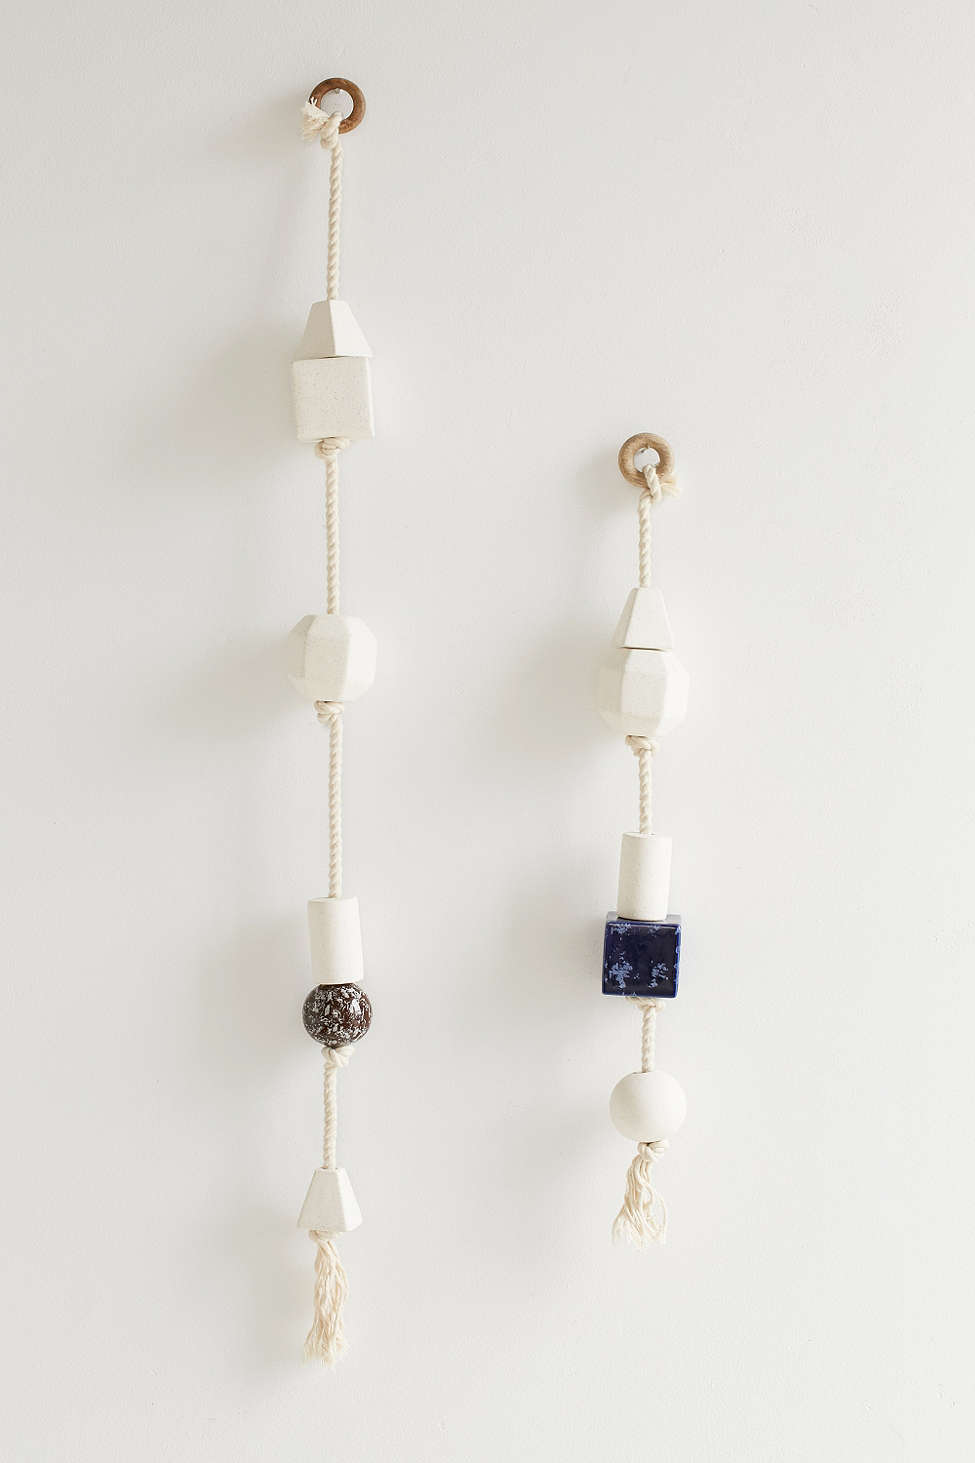 Hanging Ceramic Sculptures